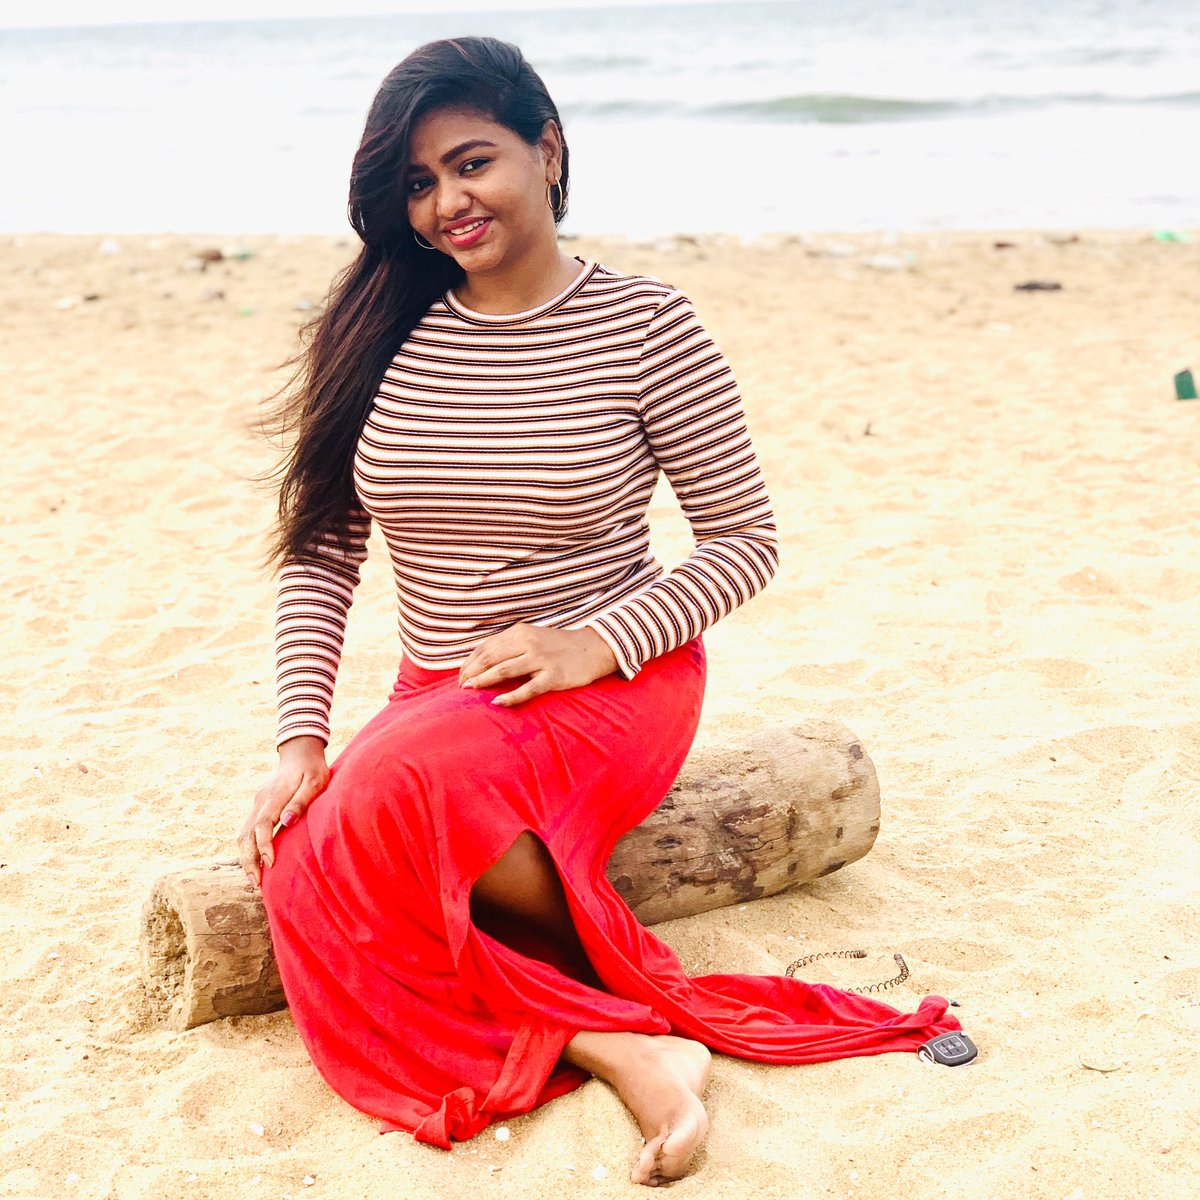 Love the Air #shalushamu #happeninglife #staycalm #stayhappy #believeinyourself #bepositive #avoidnegativity #tamilponnu #stylish #tamizhachi #kollywoodactress #pic.twitter.com/q6E8dUFkjc